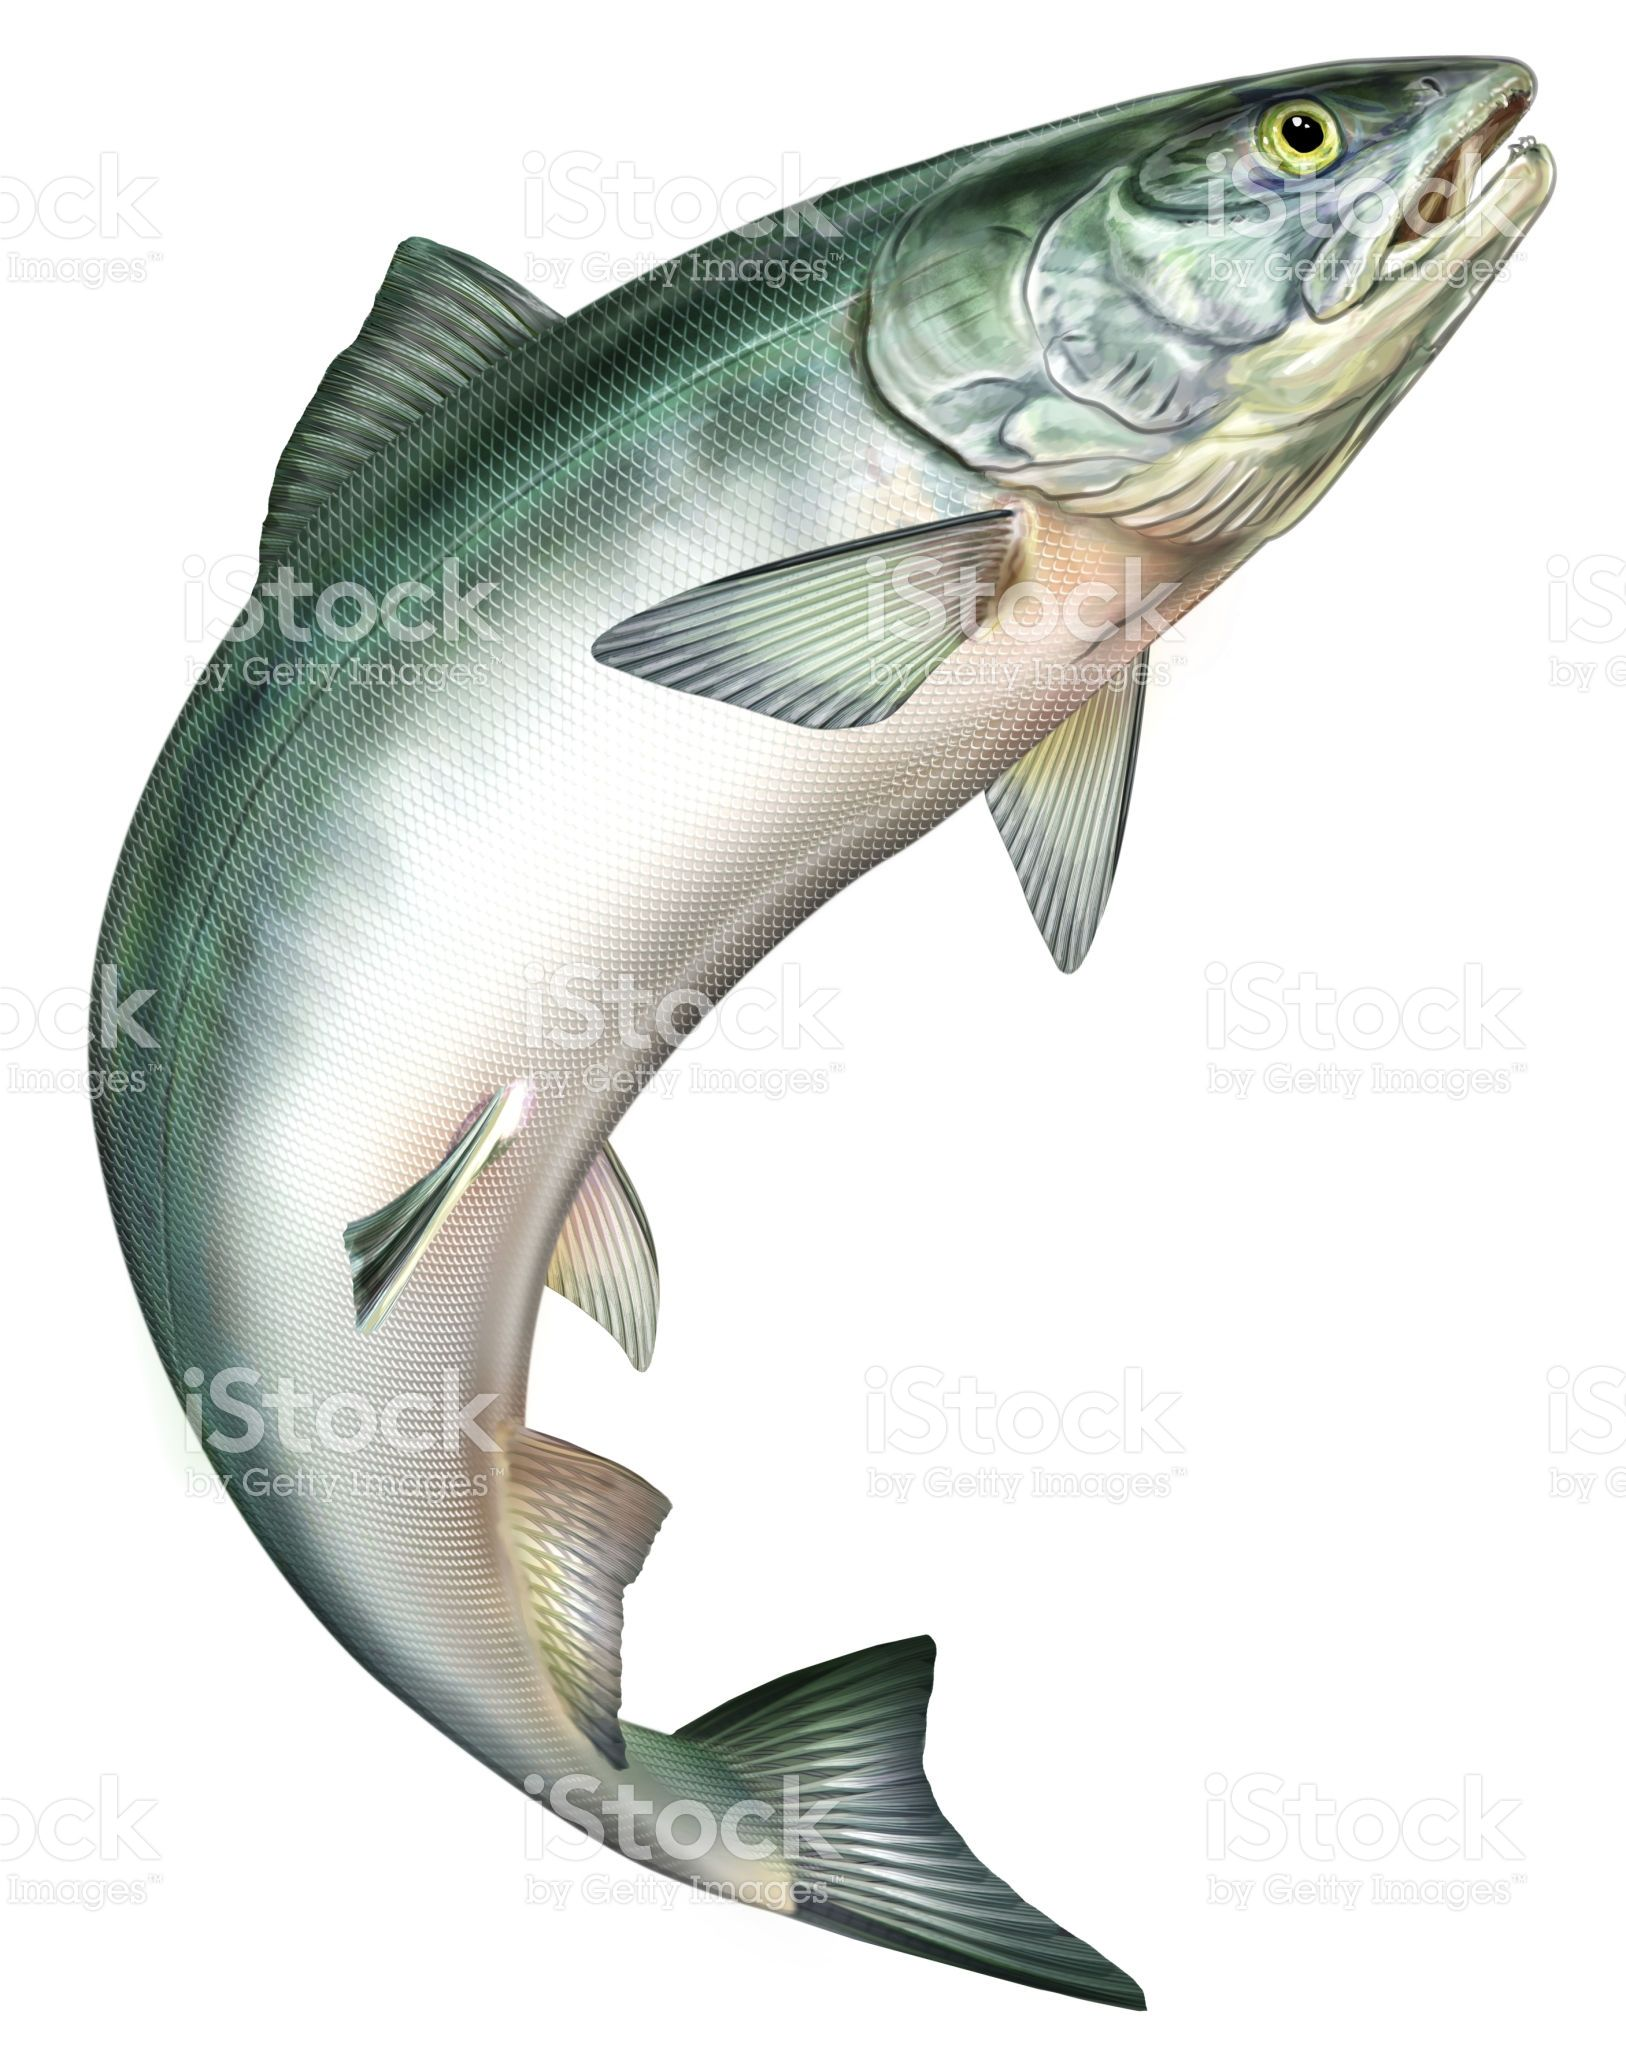 Jumping salmon clipart clipart transparent download Salmon jumping   tattoo in 2019   Fish clipart, Fish vector ... clipart transparent download